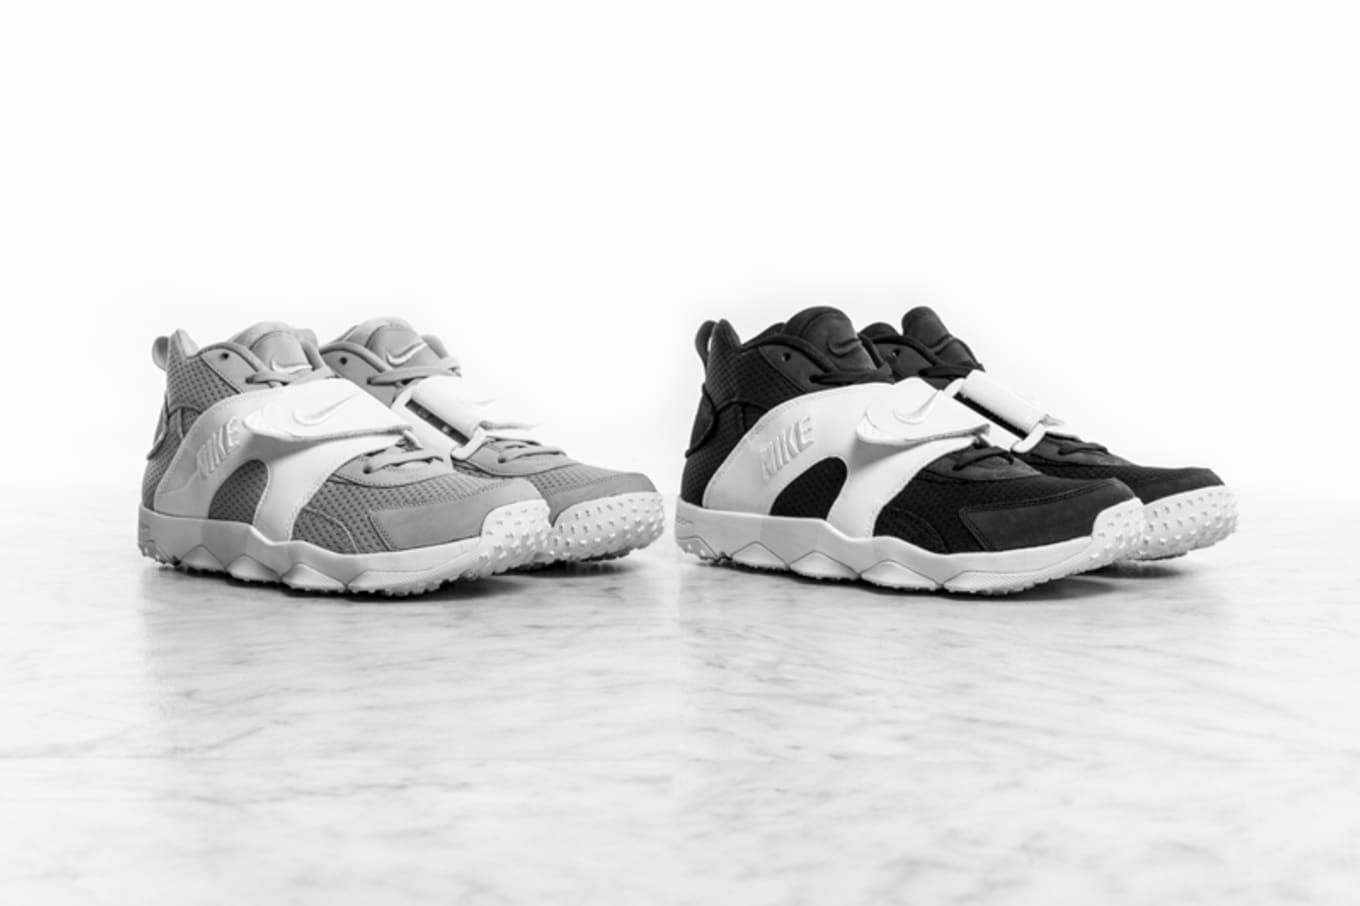 Nike Air Veer Black White For Sale - Musée des impressionnismes Giverny 744a52df0a068